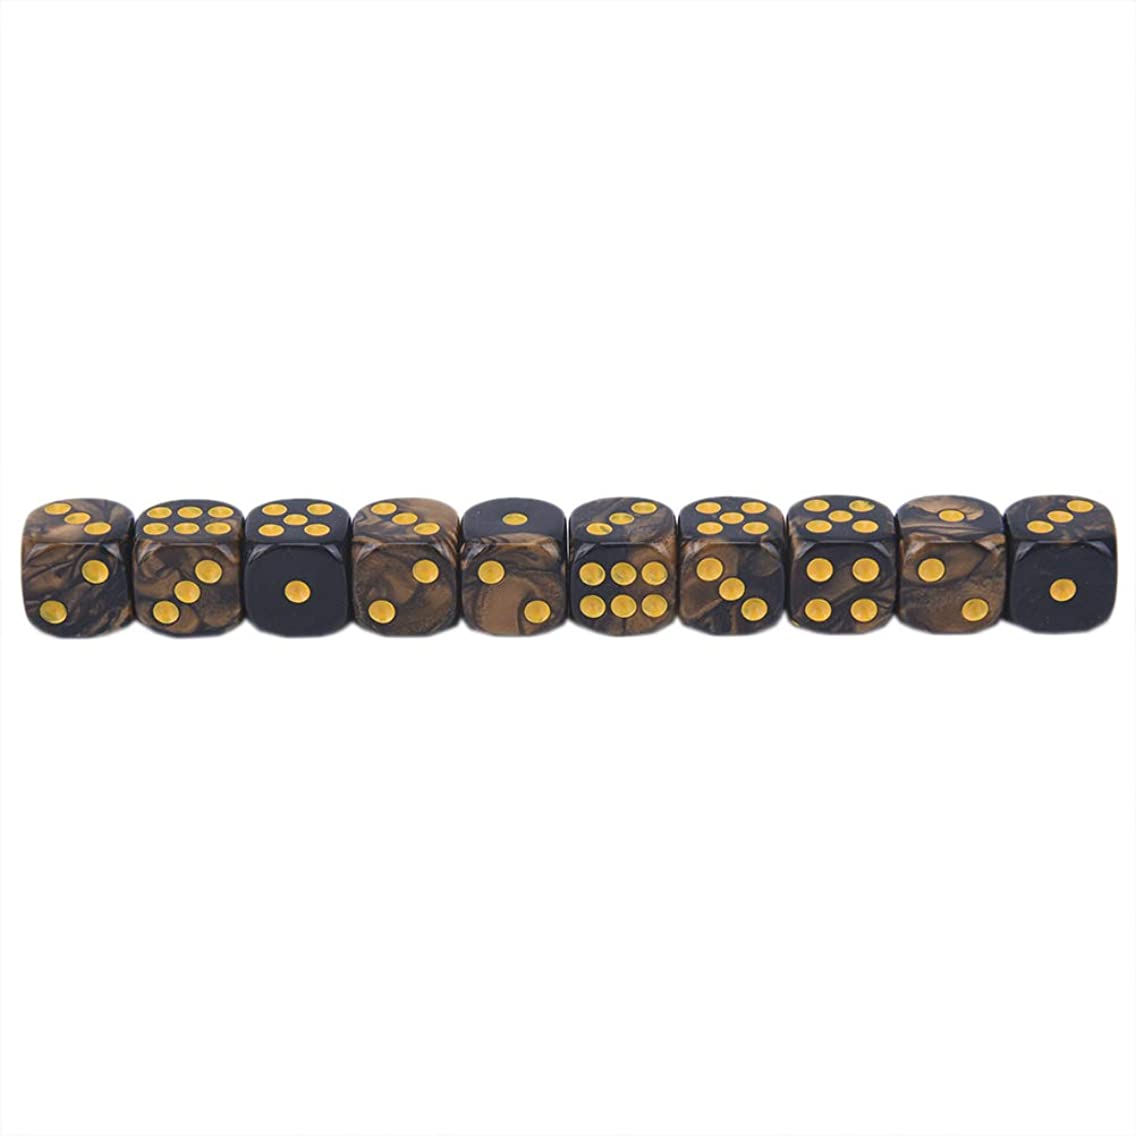 10 Pcs 6 Side 12mm Acrylic Cube Round Corner Table Playing Games Drinking Dice